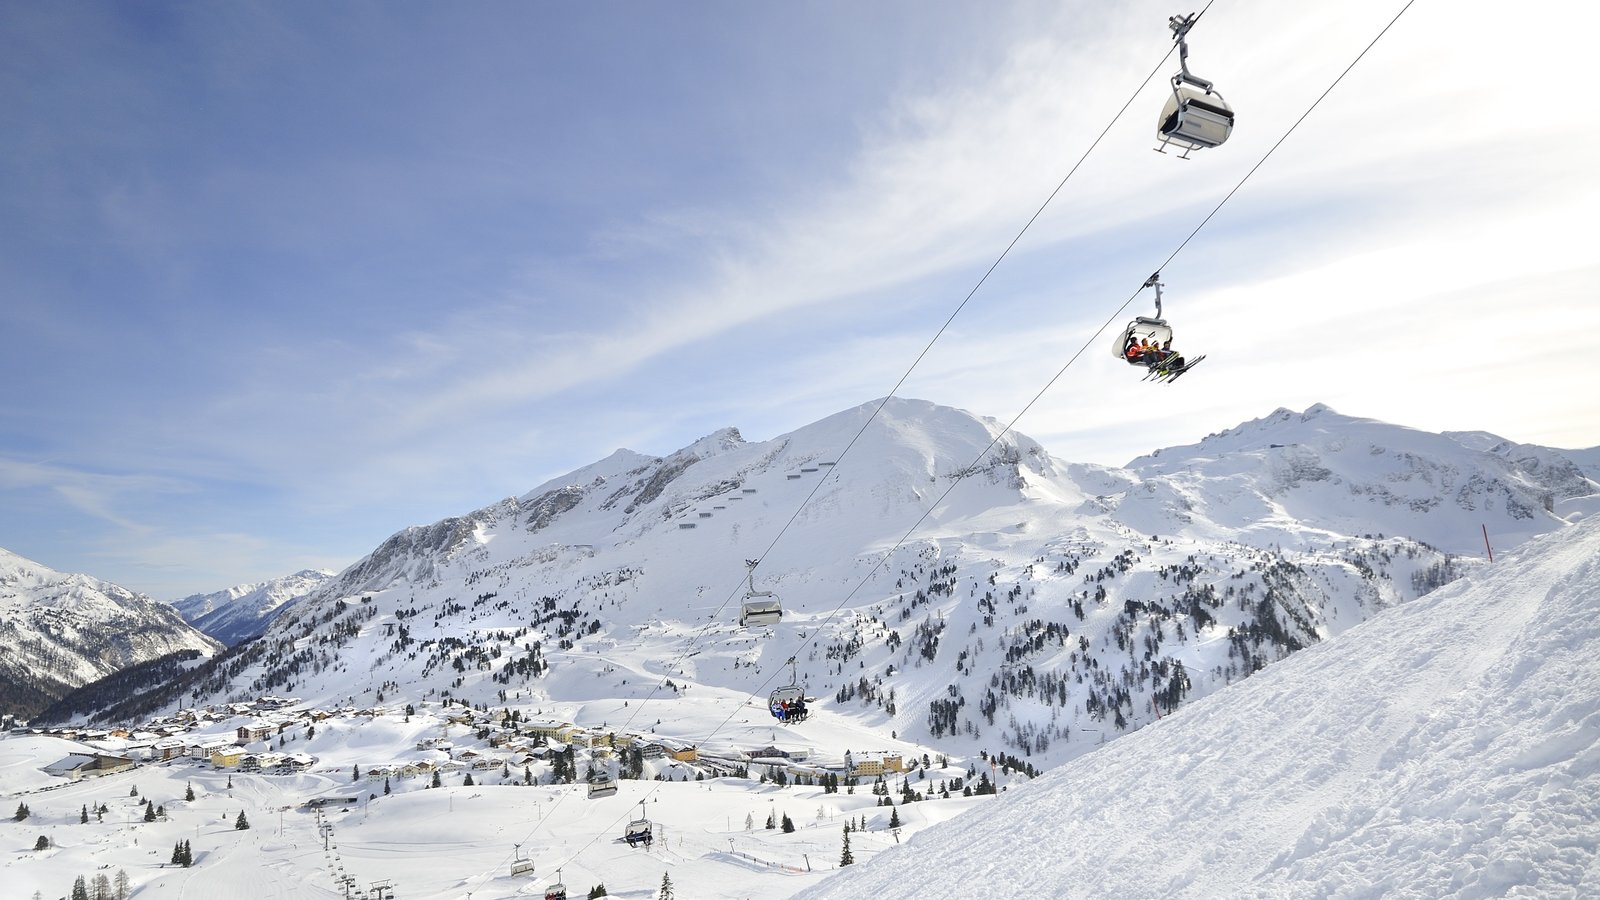 Obertauern showing a gondola, snow and mountains